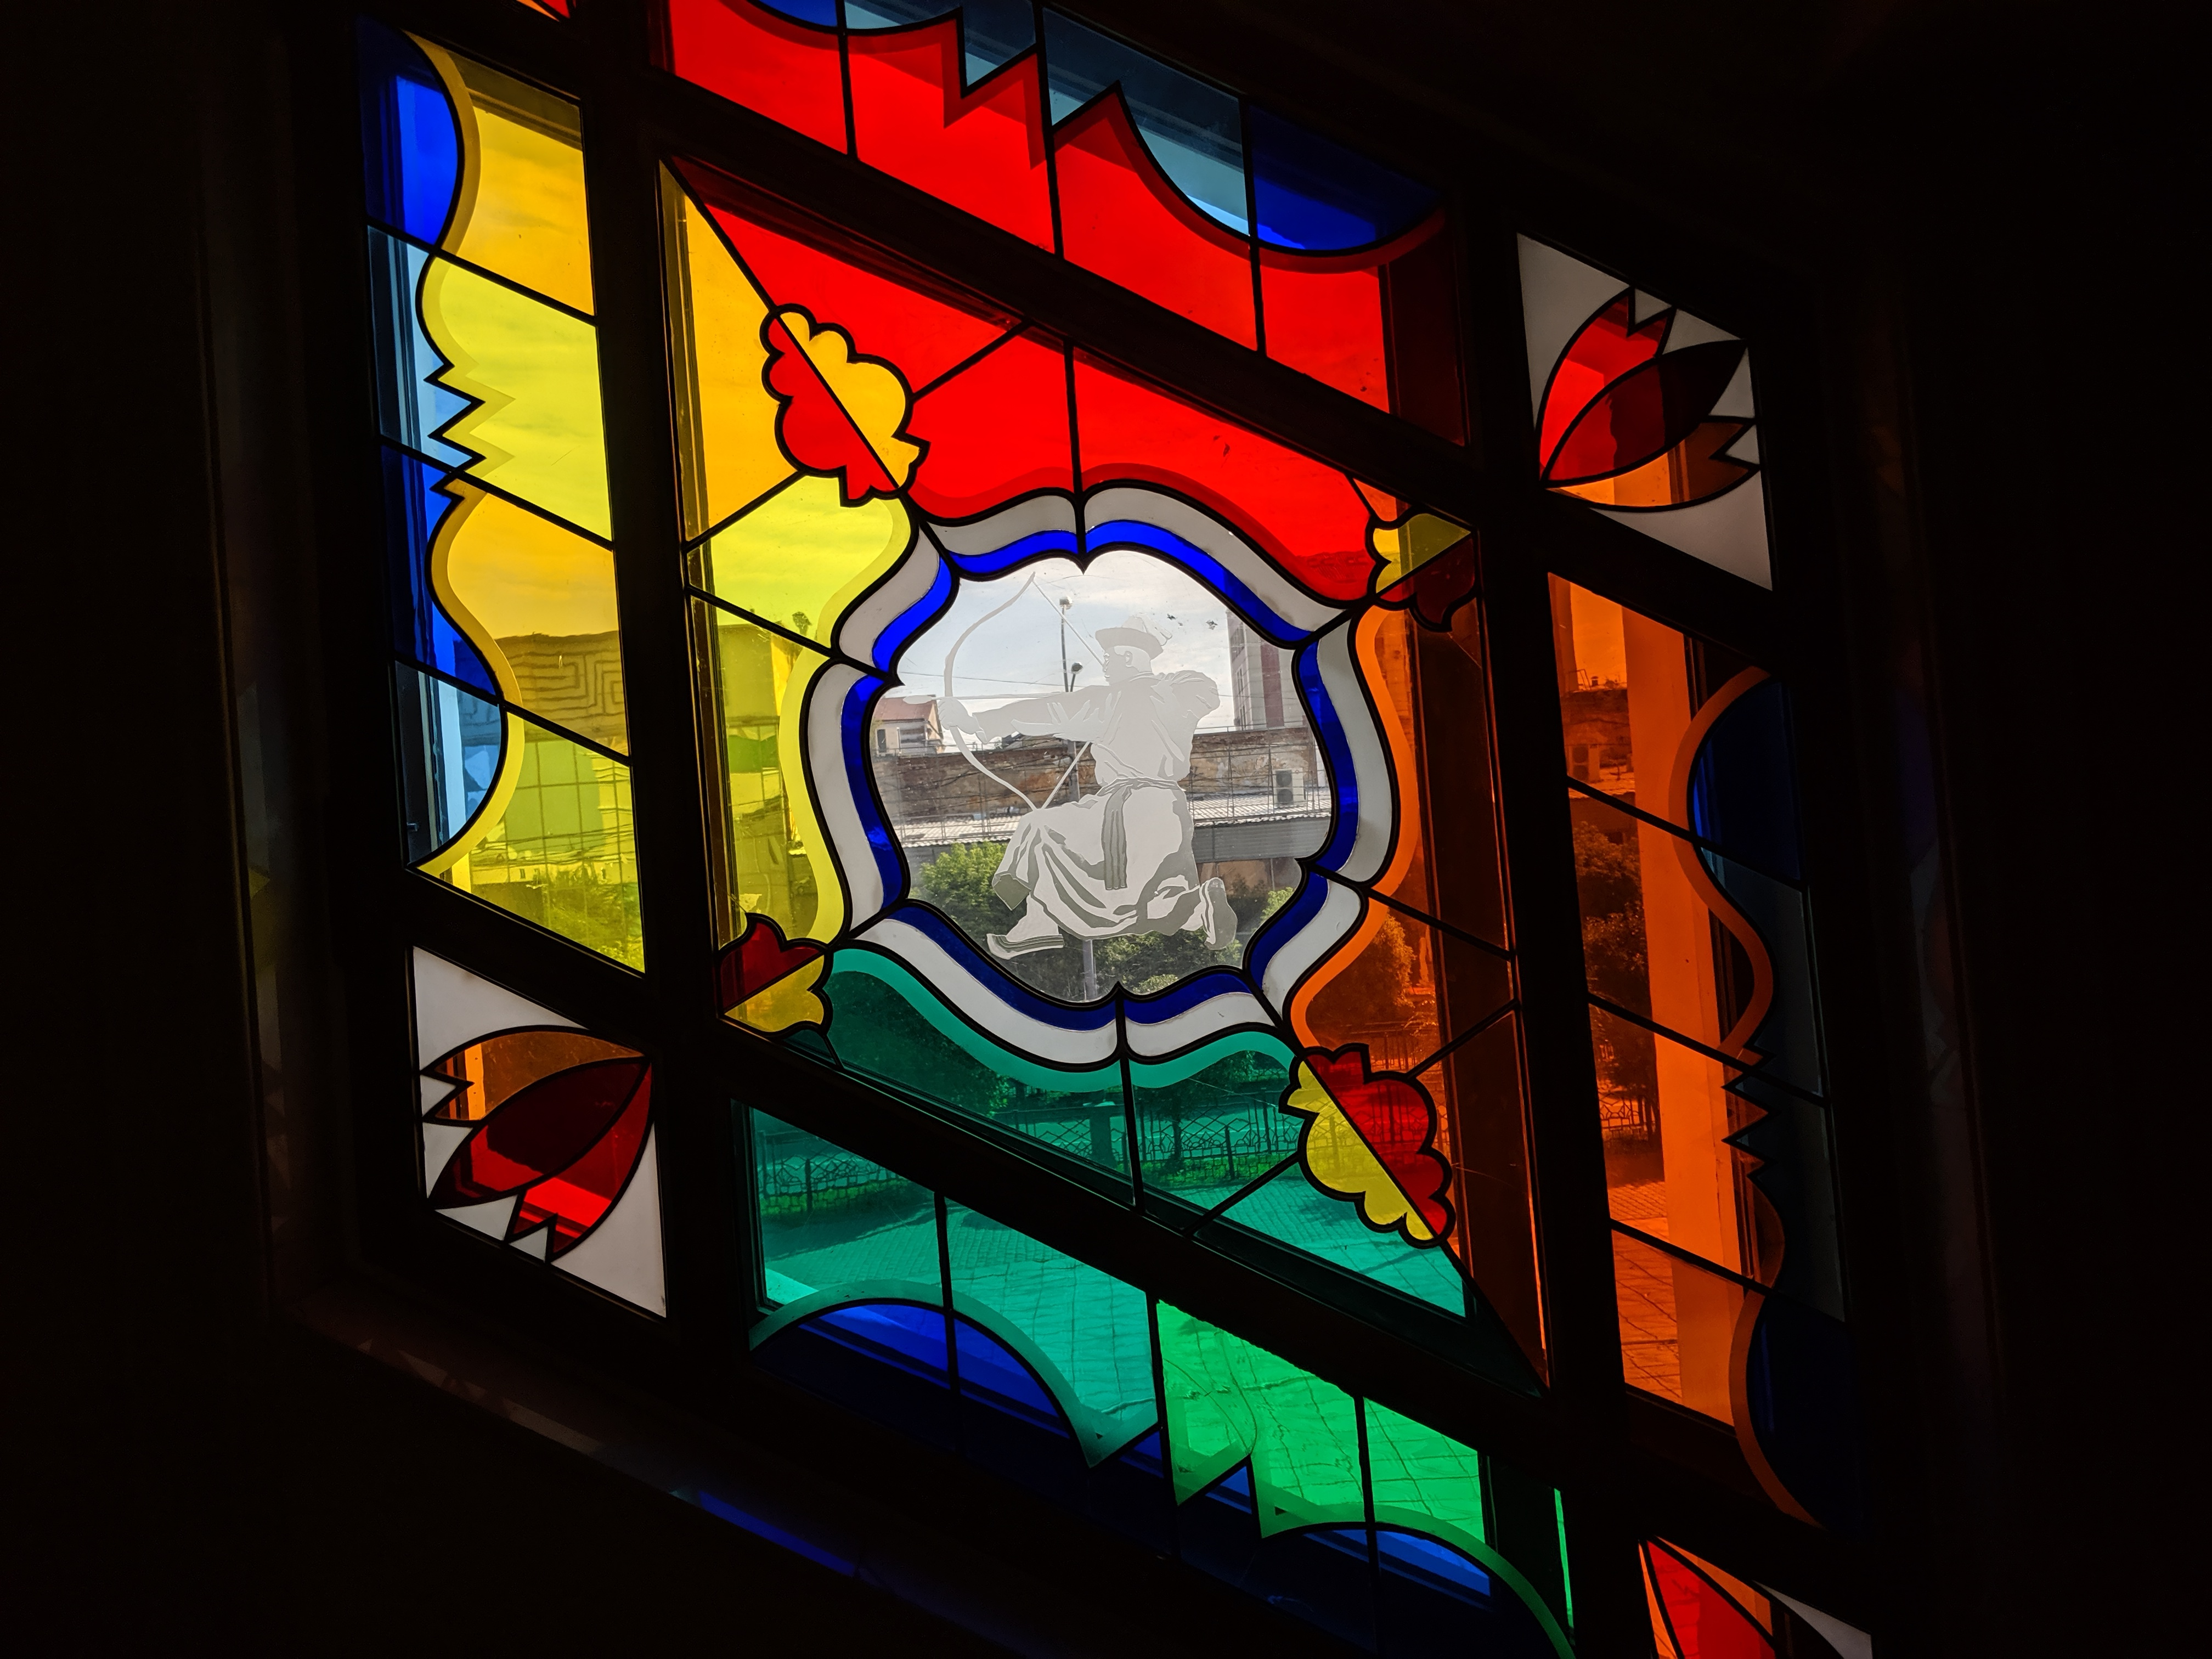 Stained-glass window at ballet theater in Ulan-Ude, Russia